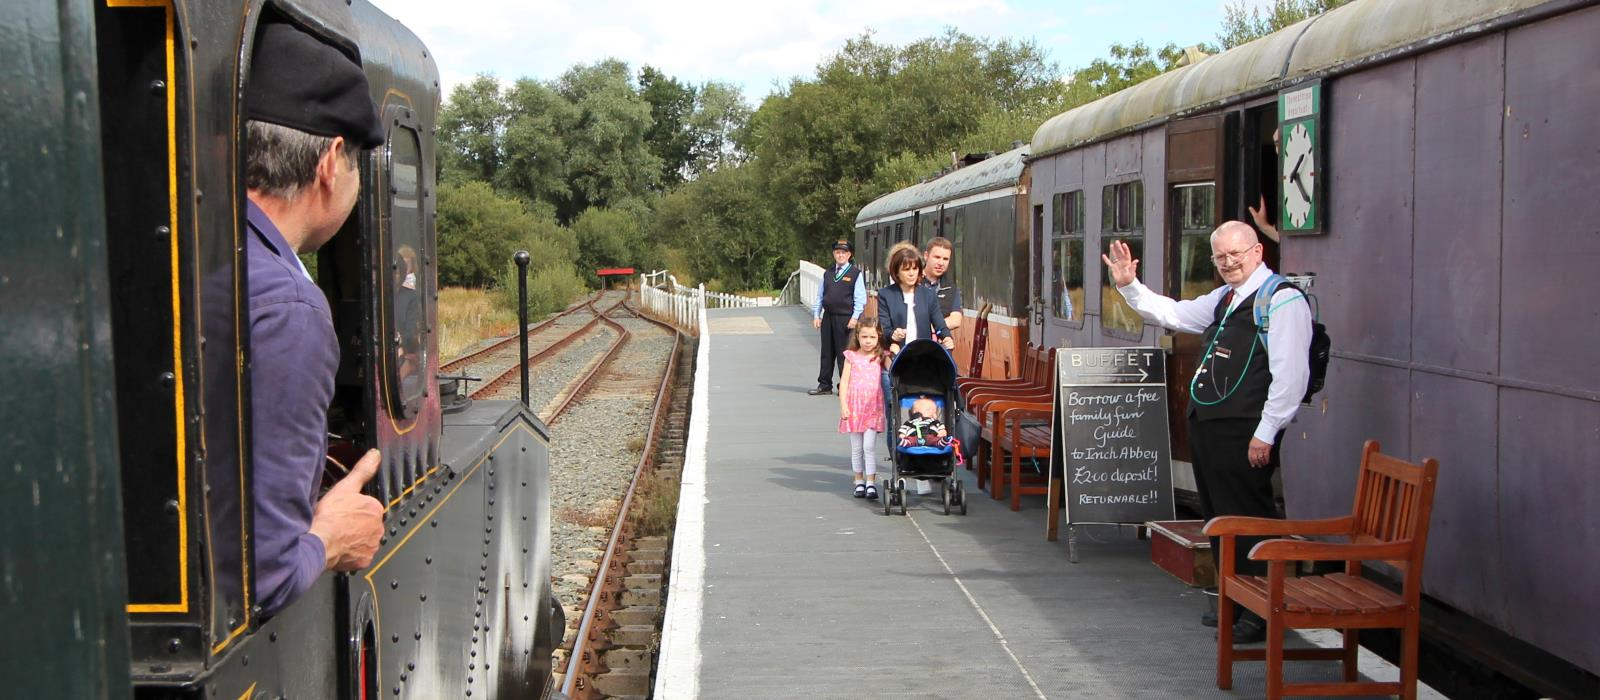 Our steam train arrives into Inch Abbey Station, greeted by a friendly wave from buffet manager Andrew.